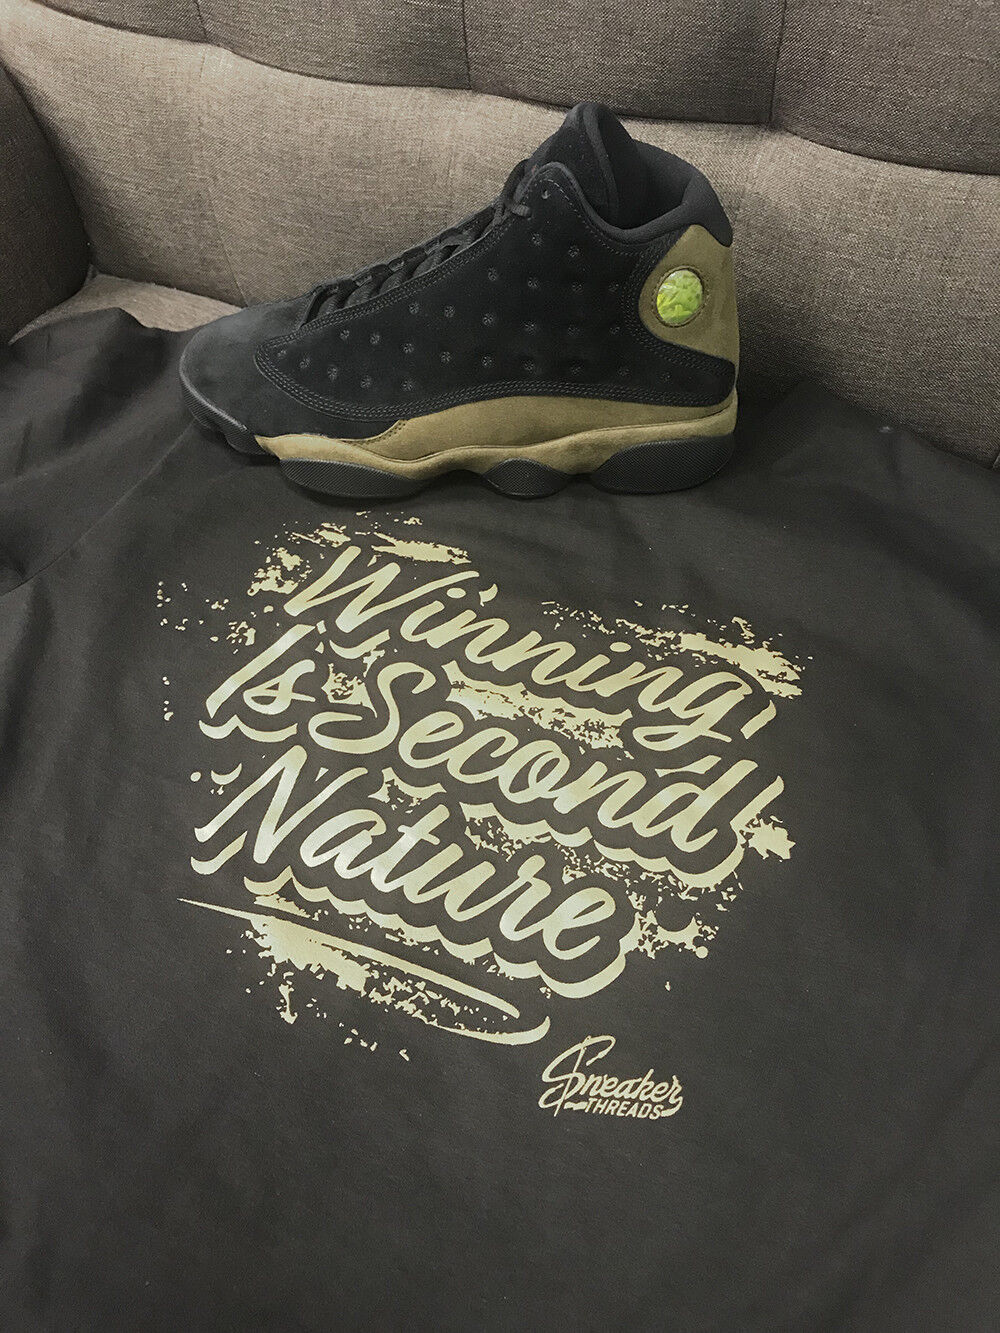 Shirt Match Jordan 13 Olive shoes Retro 13 - Second Nature Tee